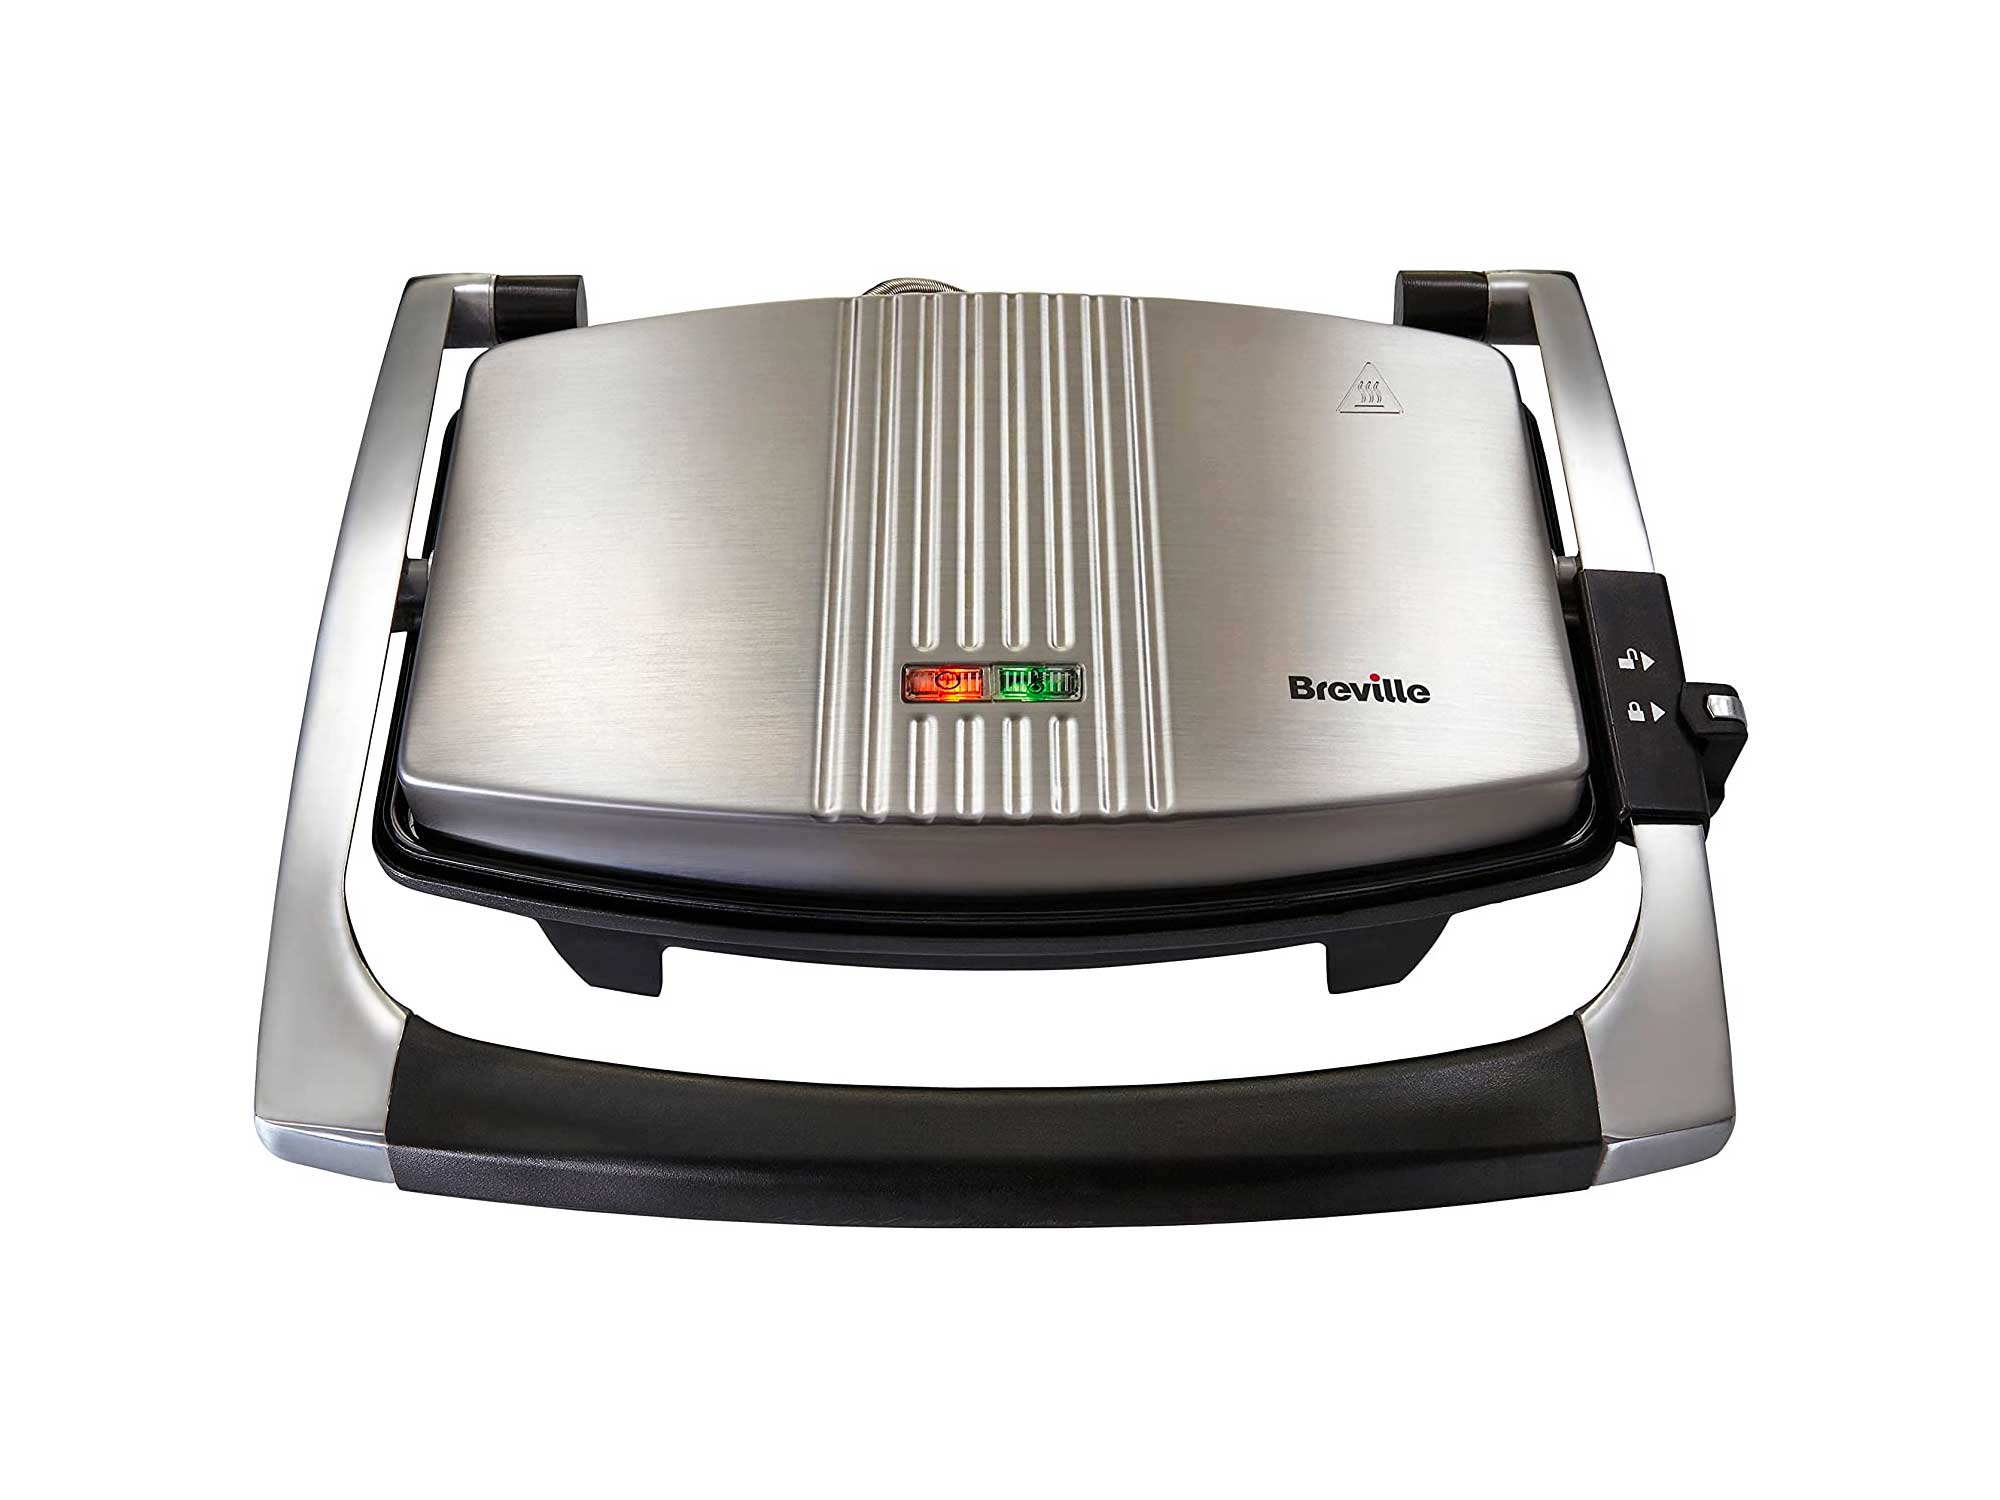 Breville Sandwich/Panini Press and Toastie Maker, Stainless Steel